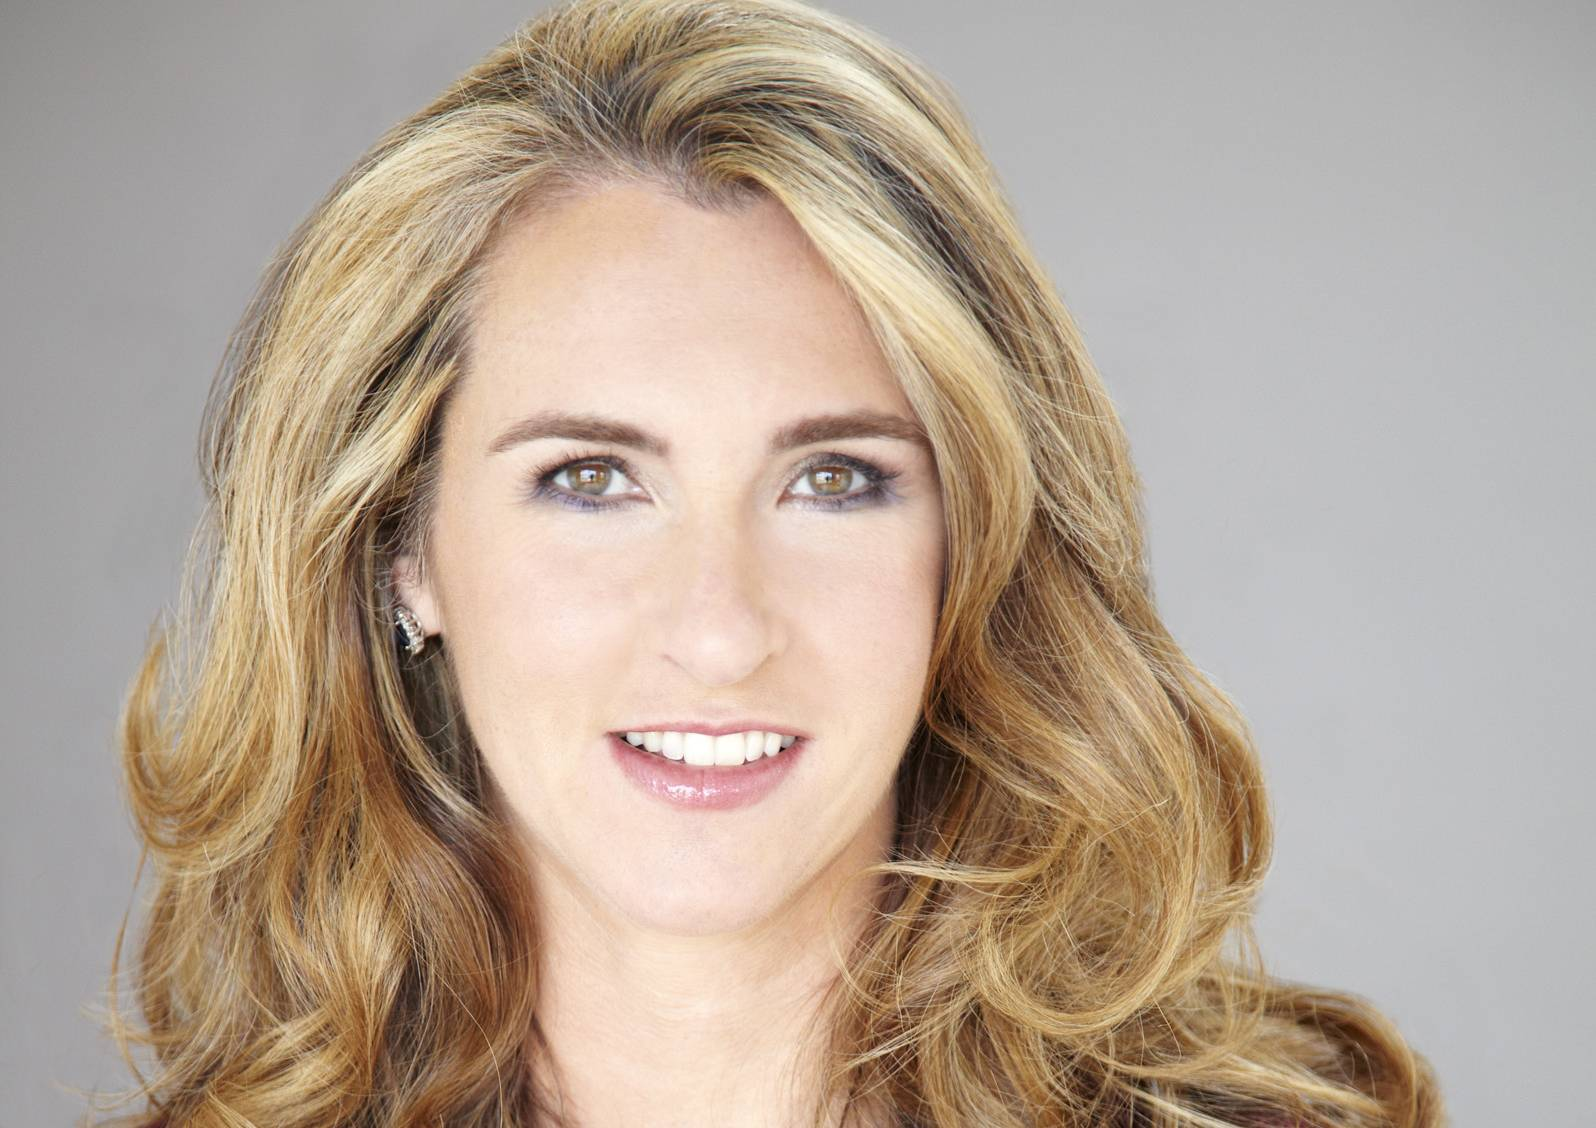 <h1>Nancy Dubuc</h1> In June, Dubuc took the reins of the hot cable empire A&E Networks from Abbe Raven, now chairman. Previously the company's president of entertainment and media, she okayed many of the $3.5-billion-in-revenue company's hit shows, including <em>Duck Dynasty</em>.